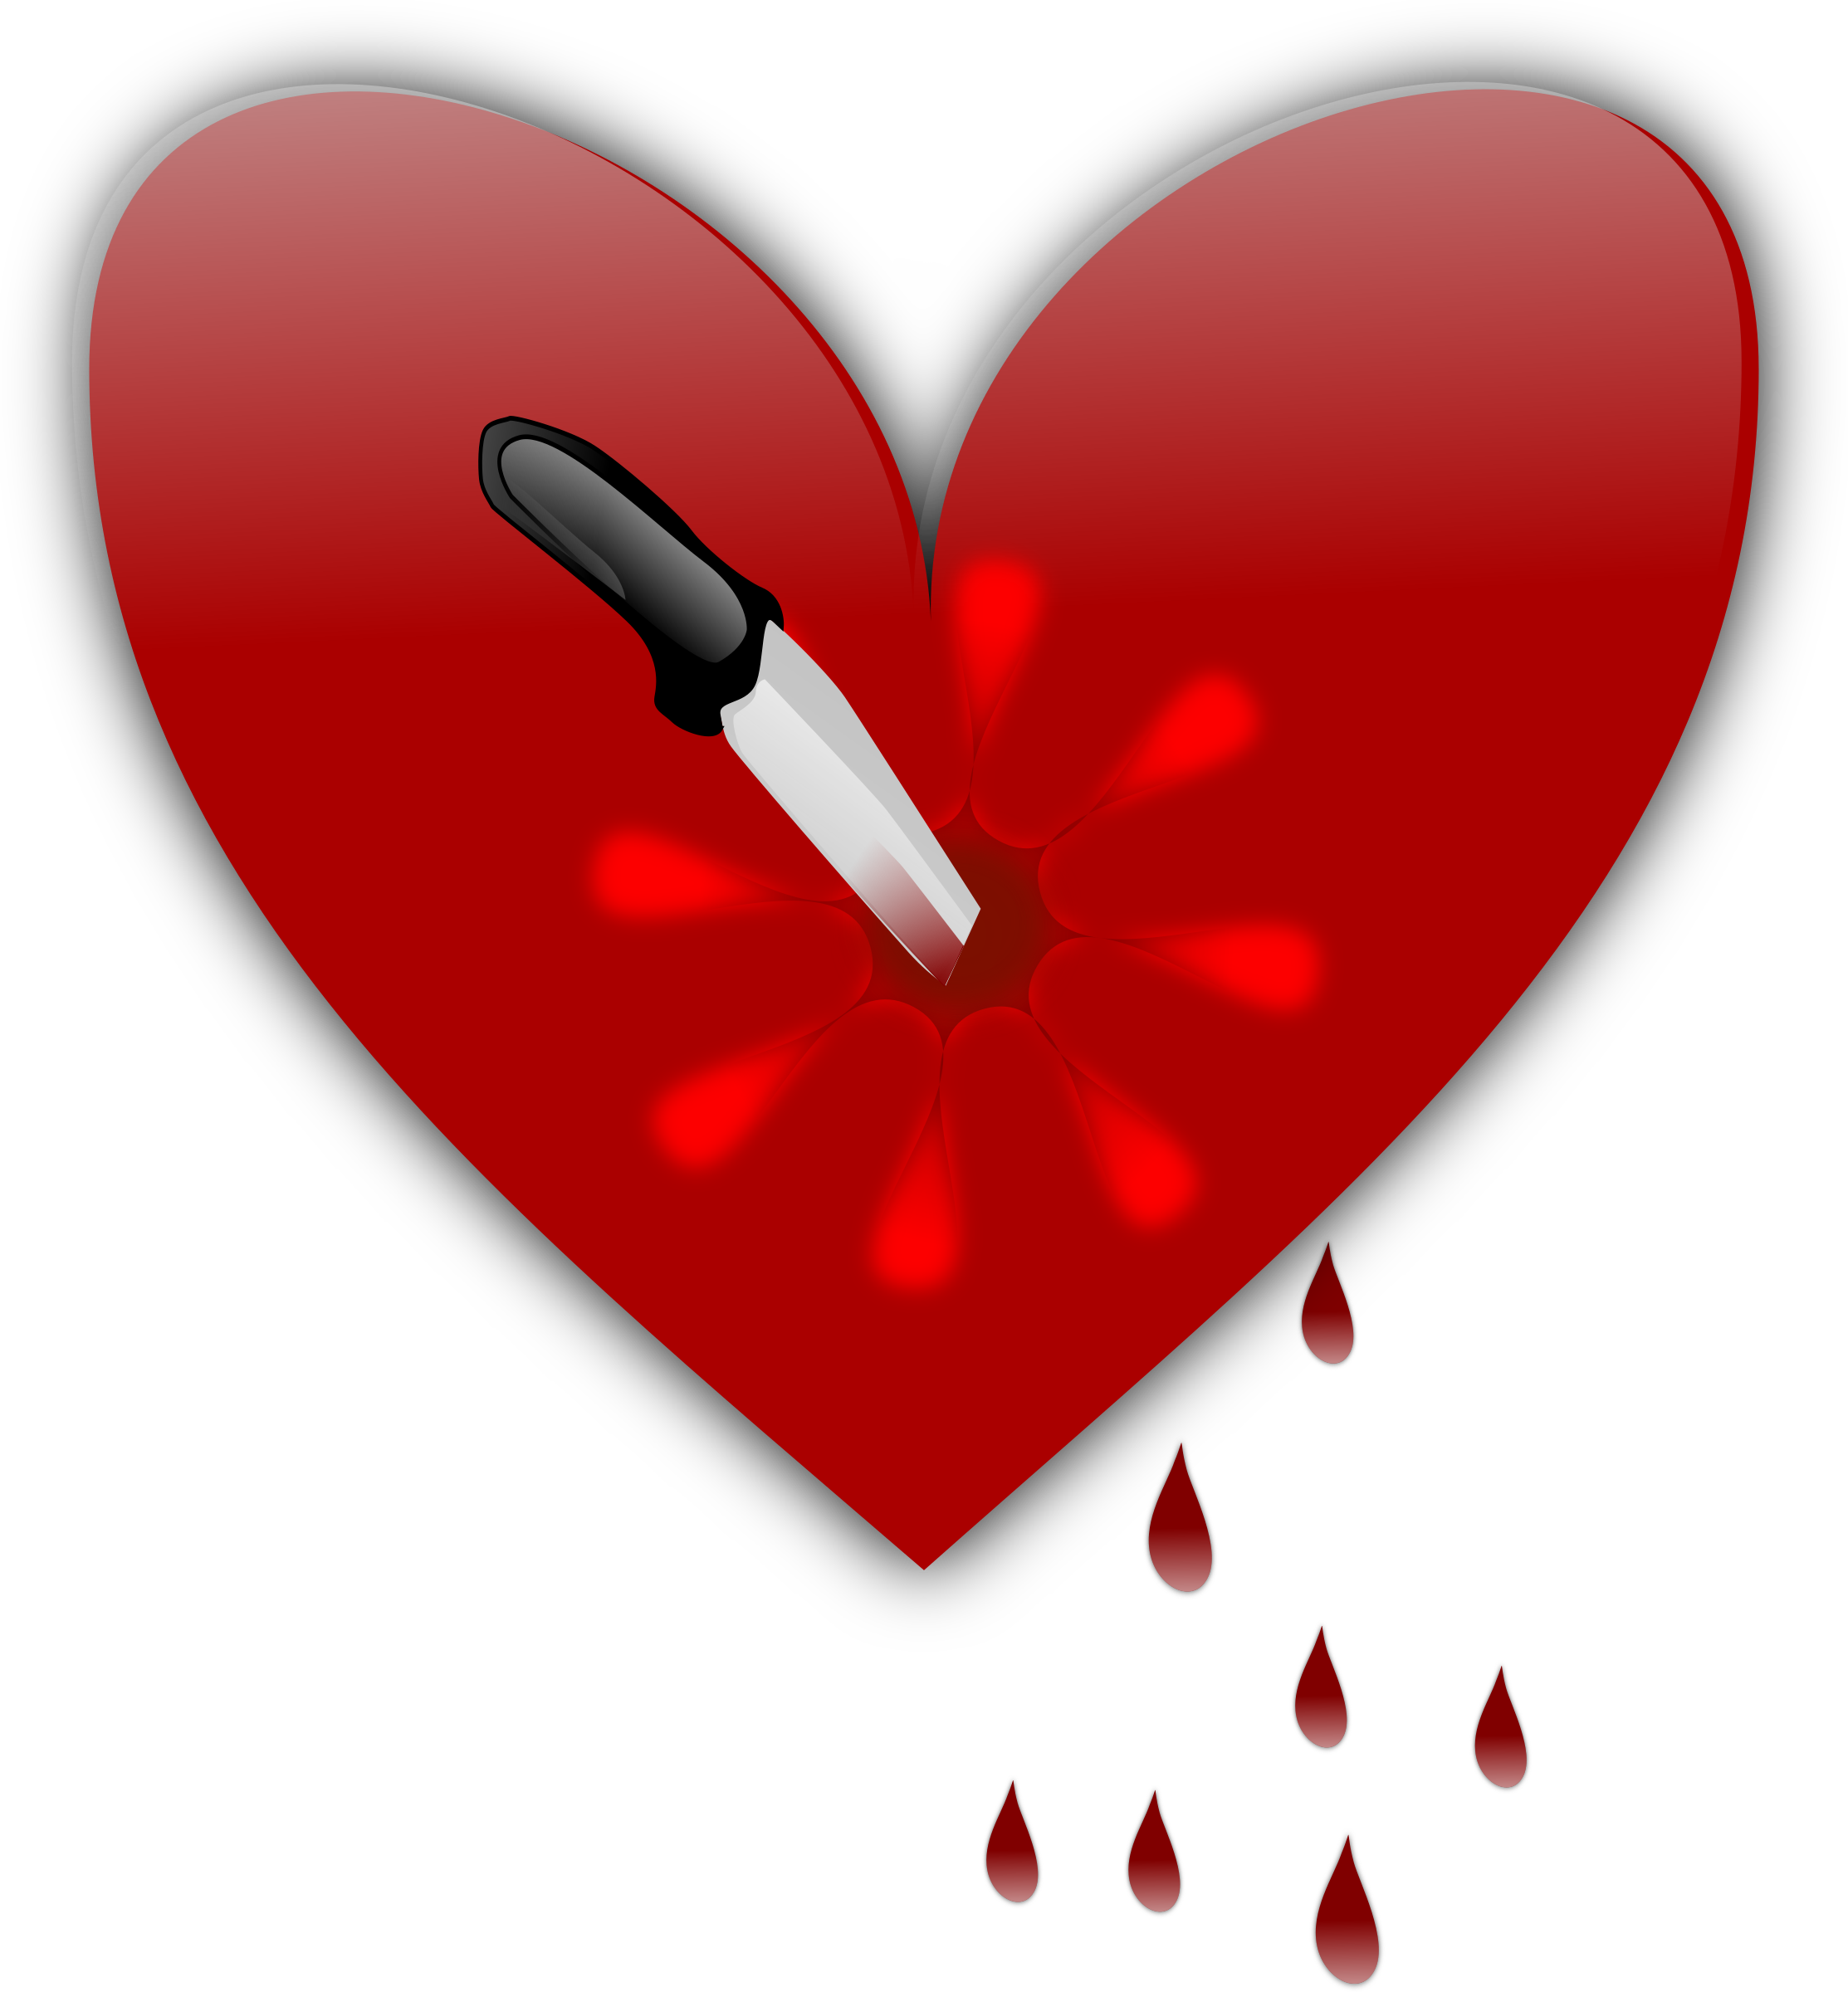 Download And Use Broken Heart Png Clipart image #45719